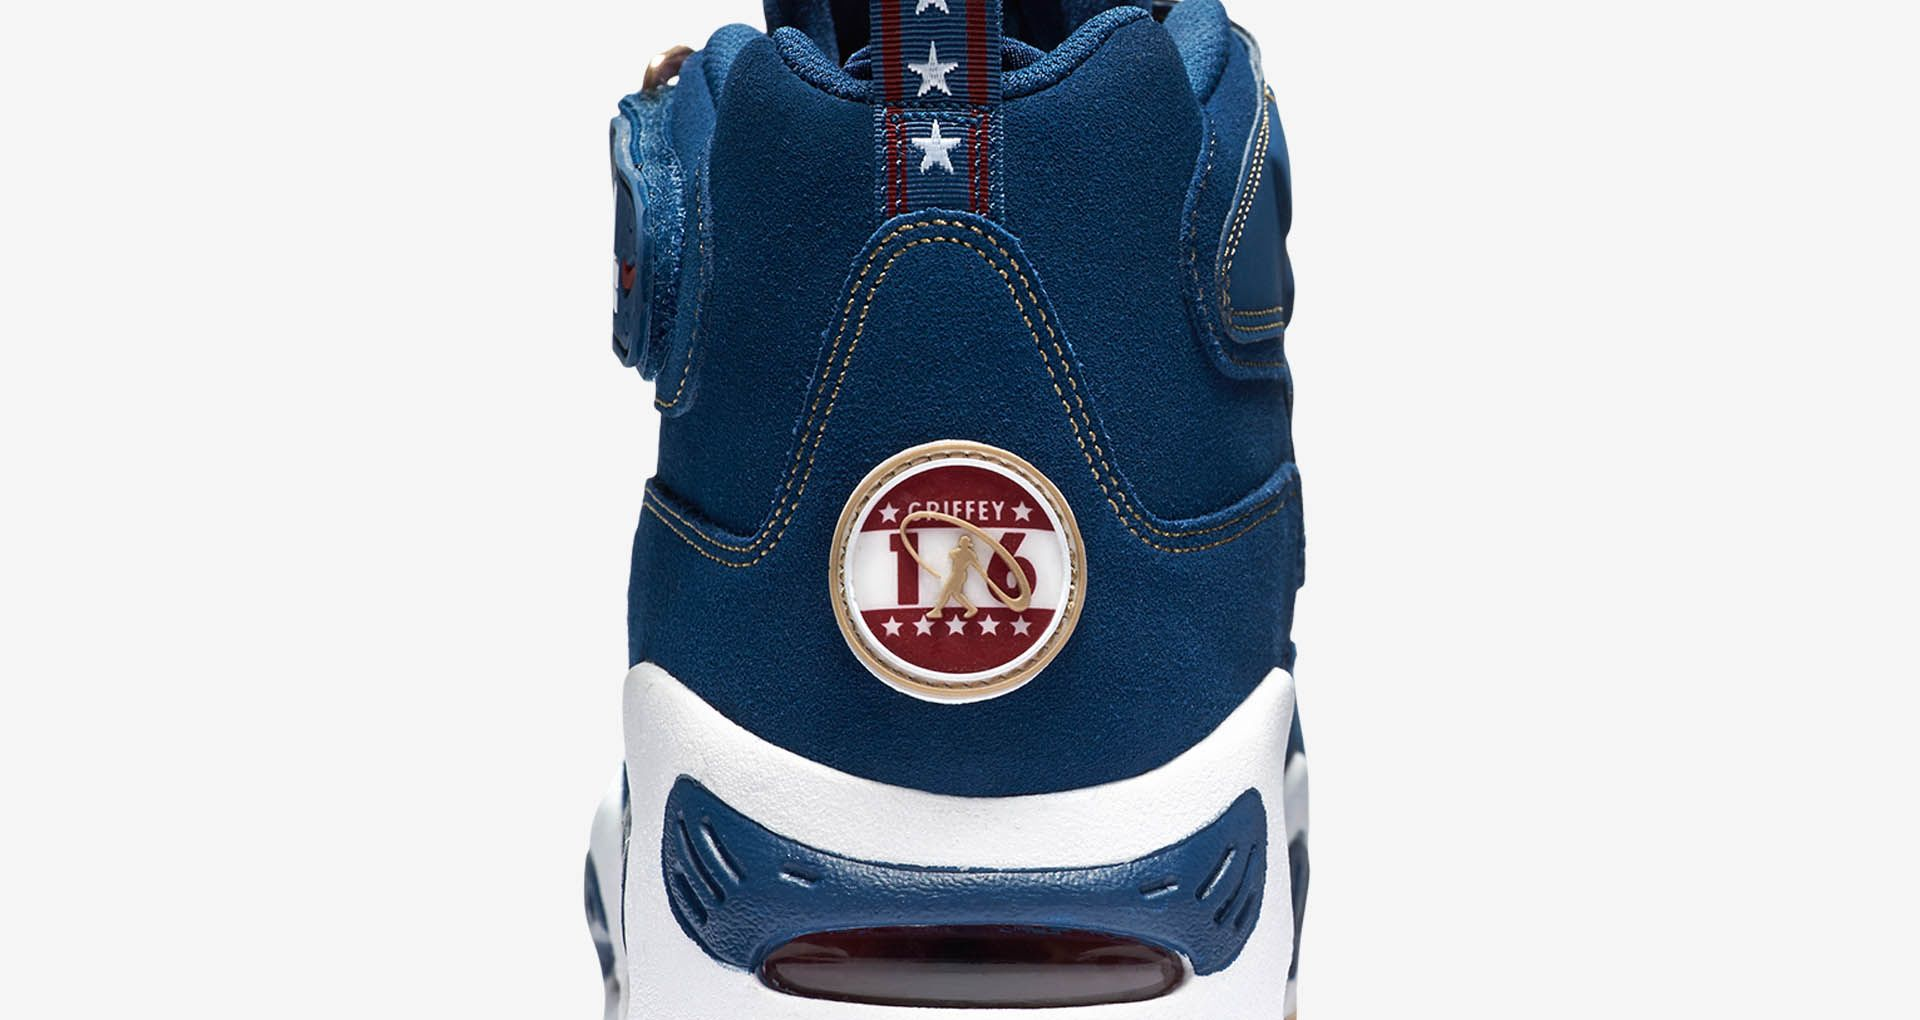 Nike Air Griffey Max 1 'Griffey for Prez' Release Date. Nike